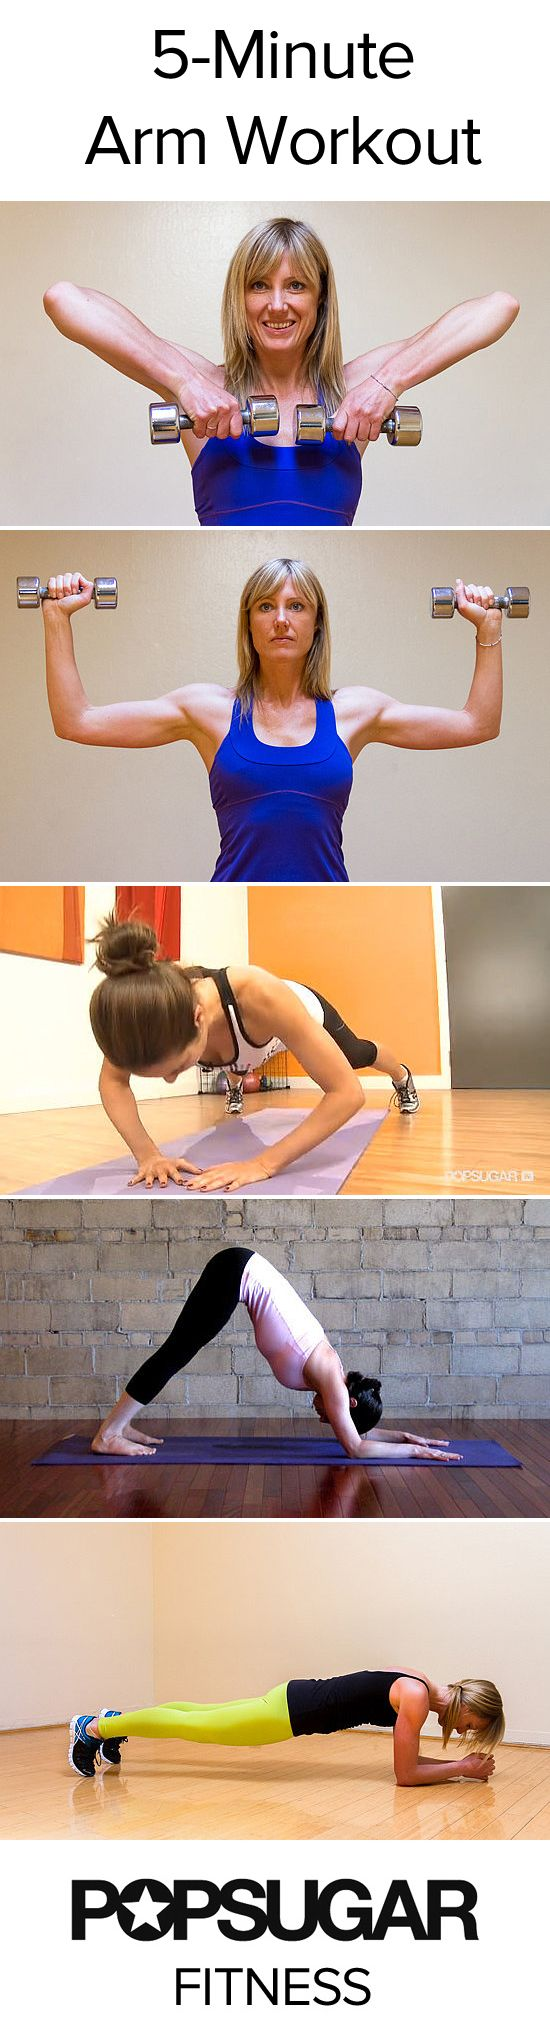 Five-minute arm toning #workout plan! All you need is a pair of light dumbbells and a mat.